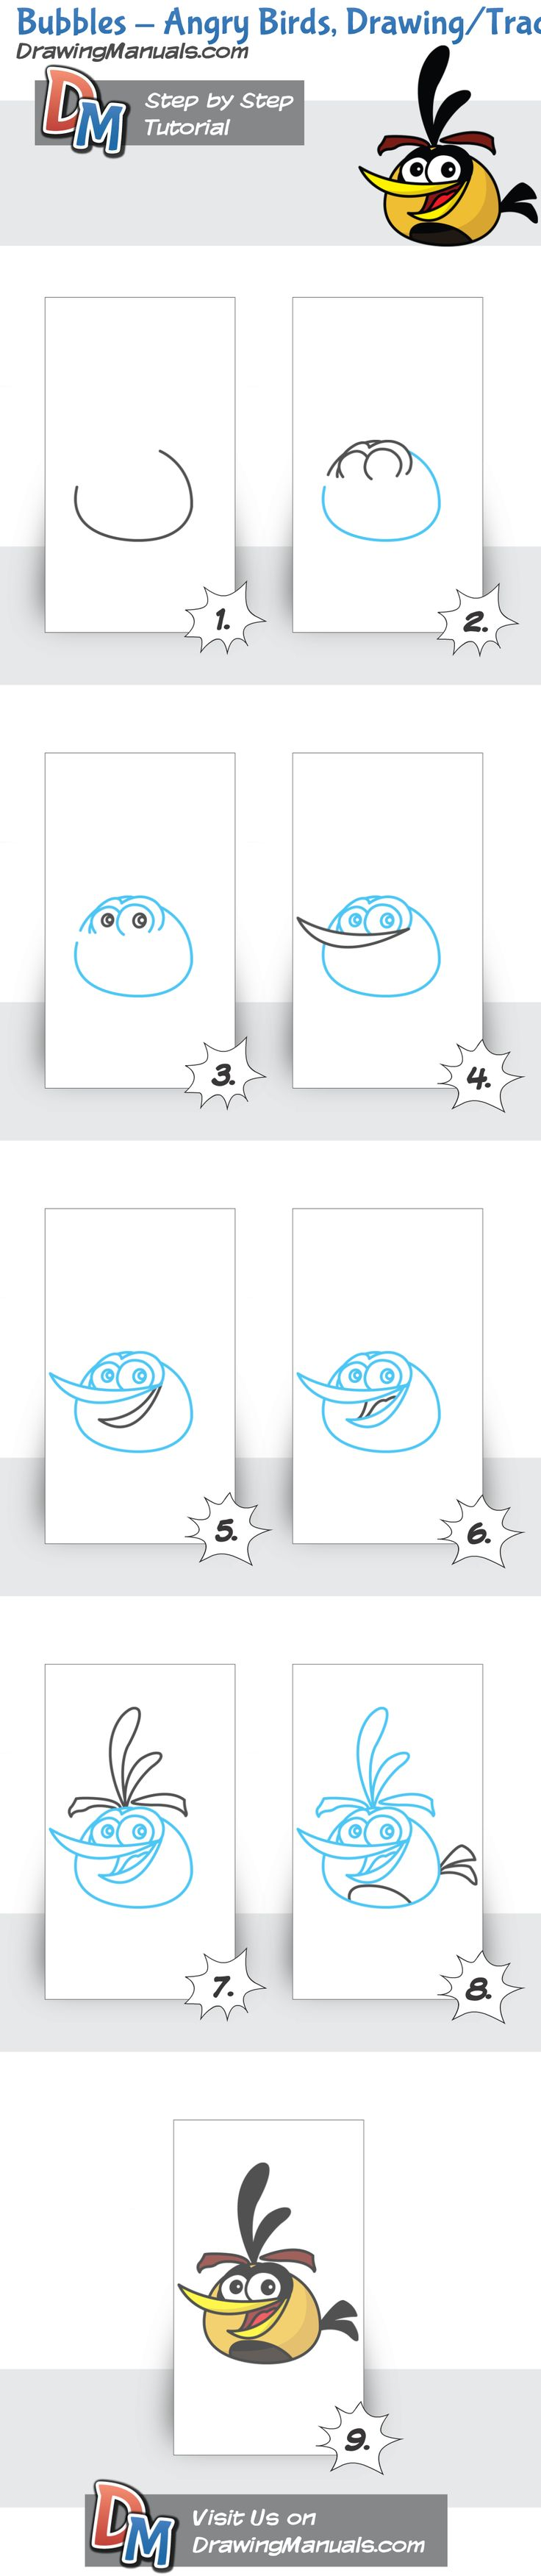 How to Draw Angry Birds, Bubbles drawing tutorial